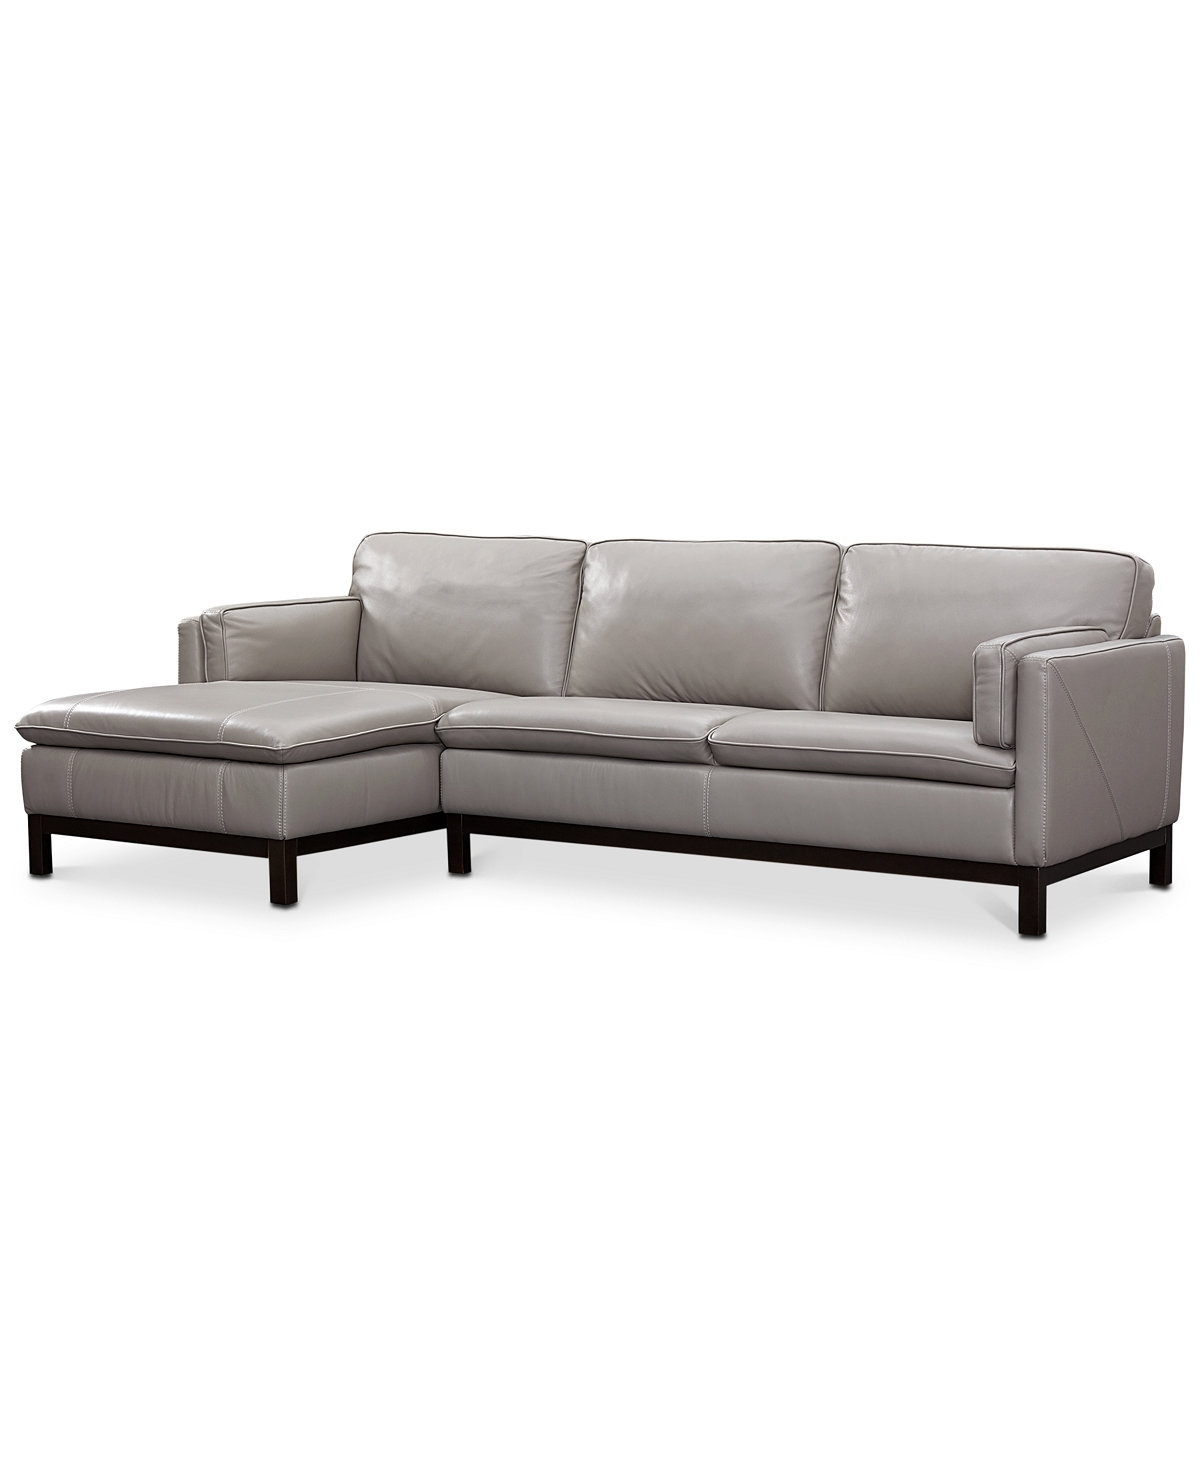 Latest Macys Leather Sofas For Ventroso 2 Pc (View 7 of 15)